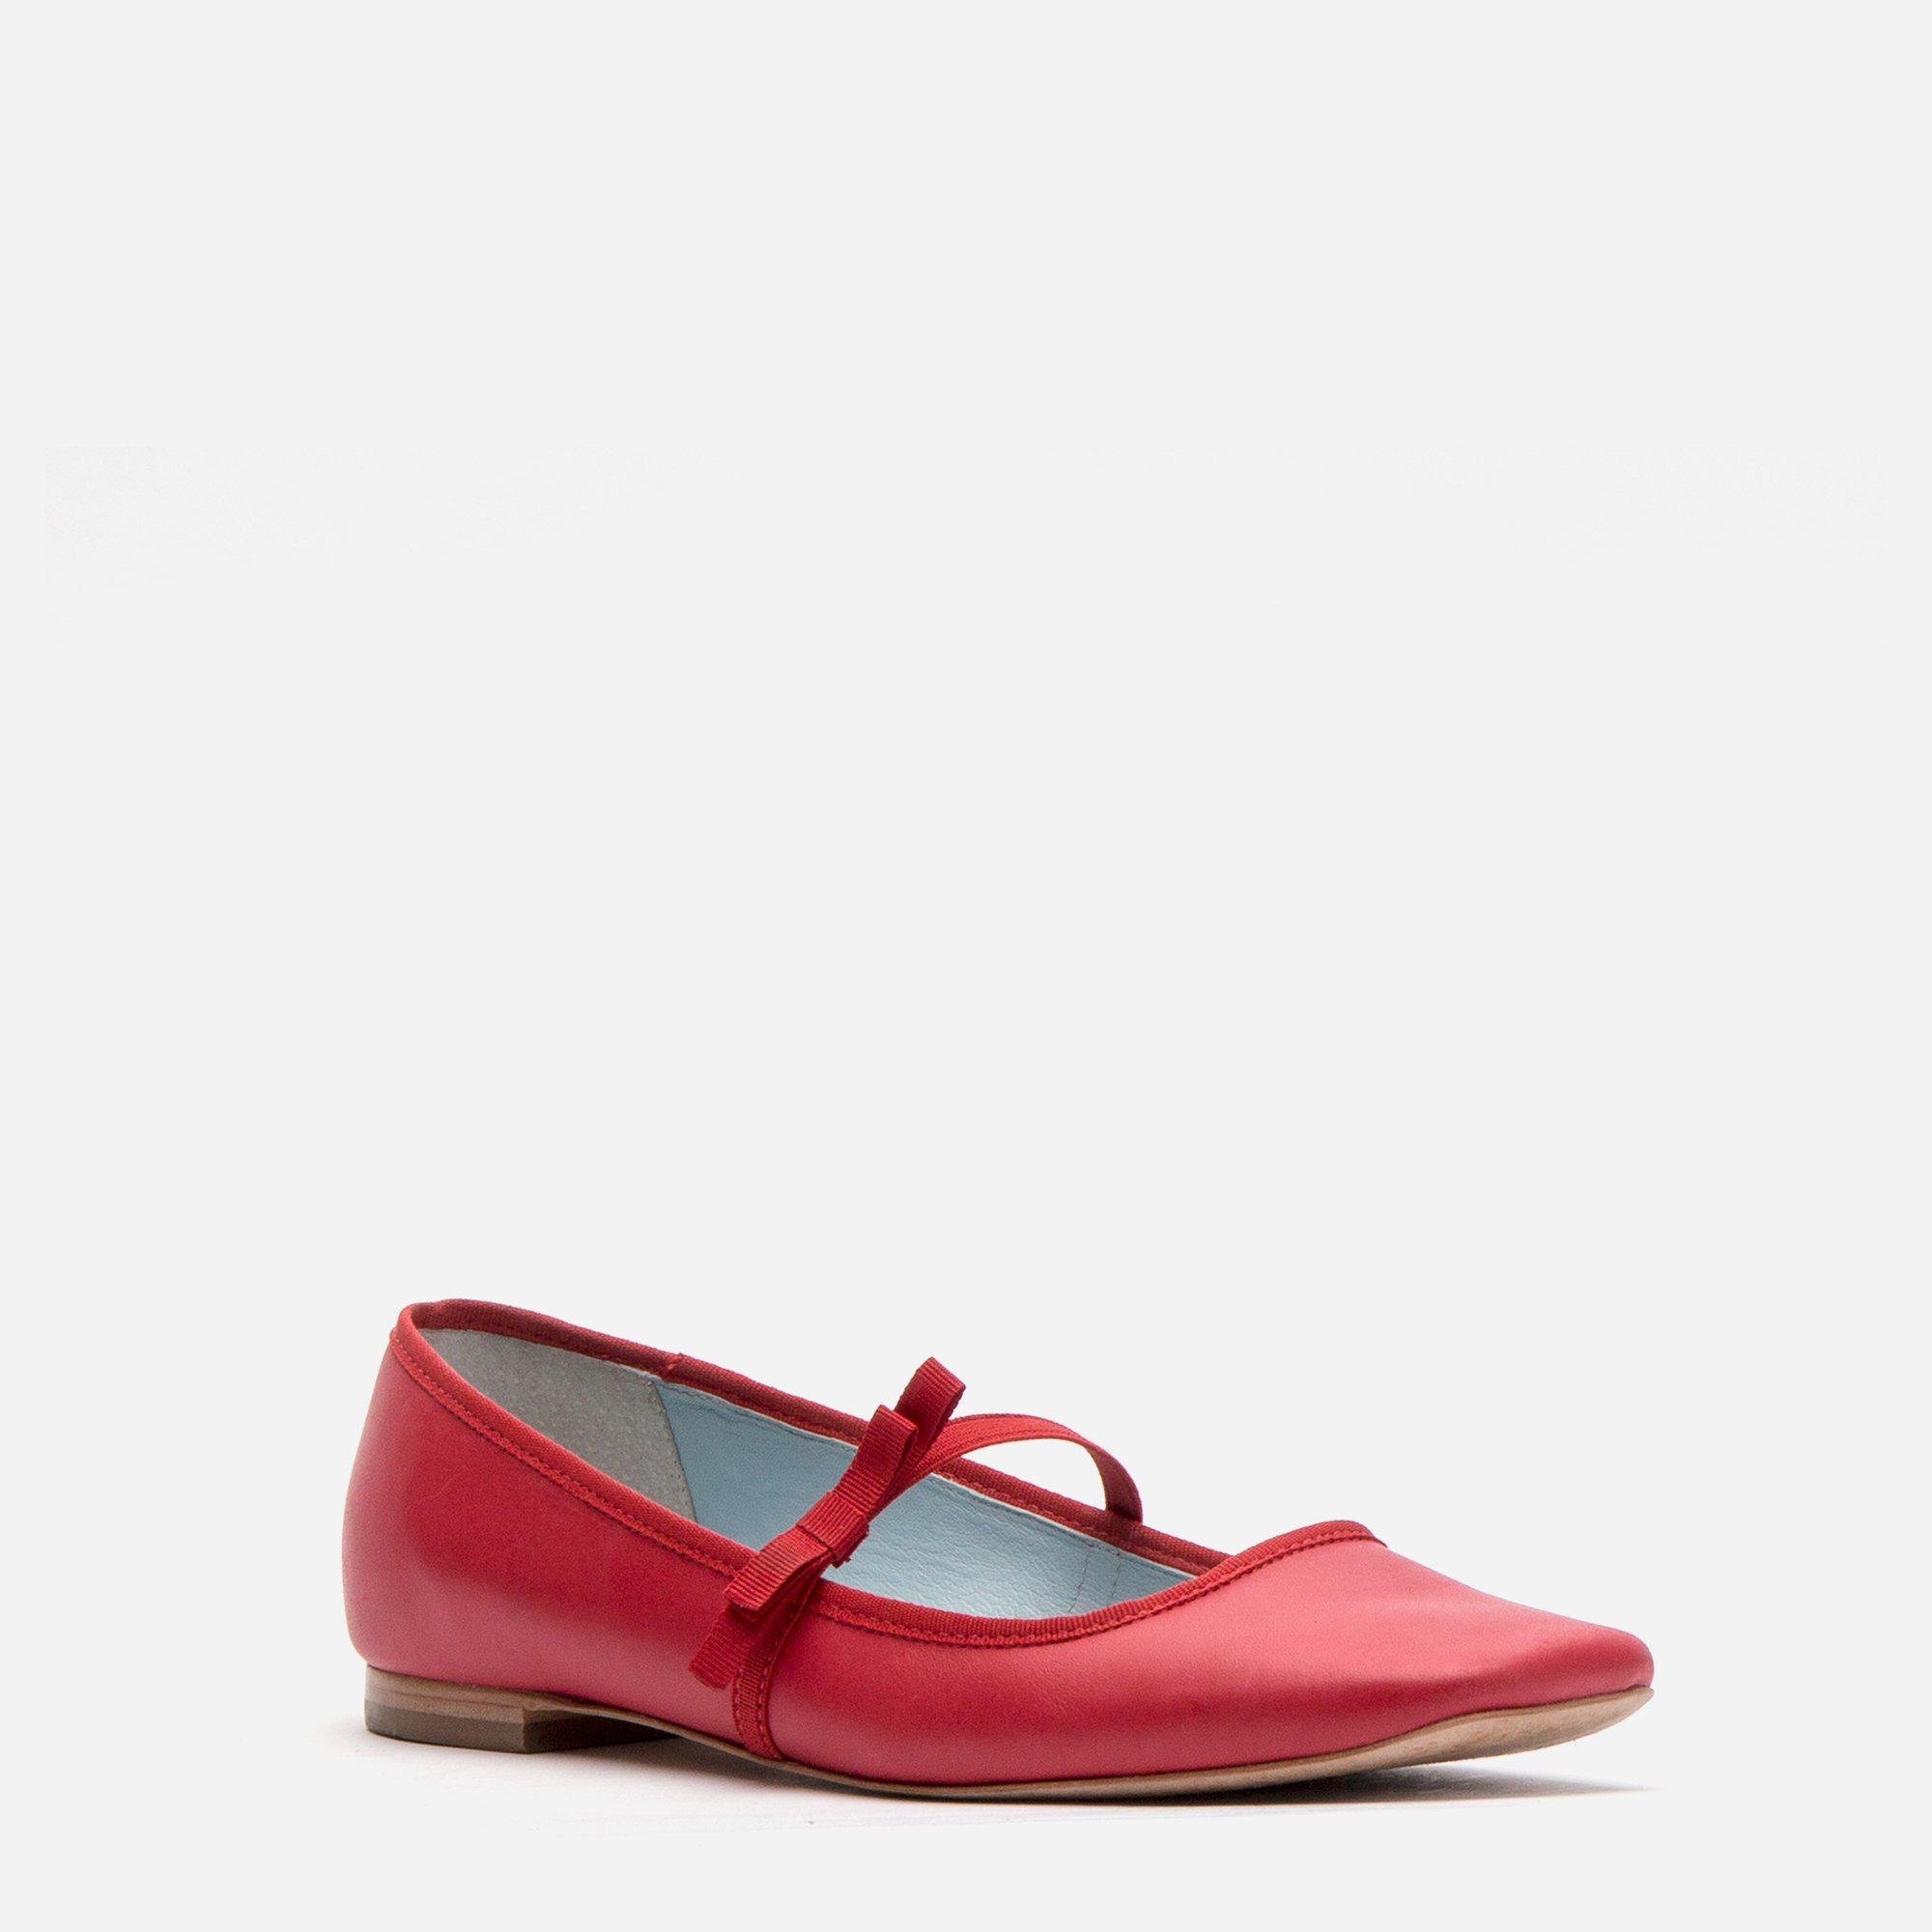 Jude Mary Jane Leather Flat Red 2